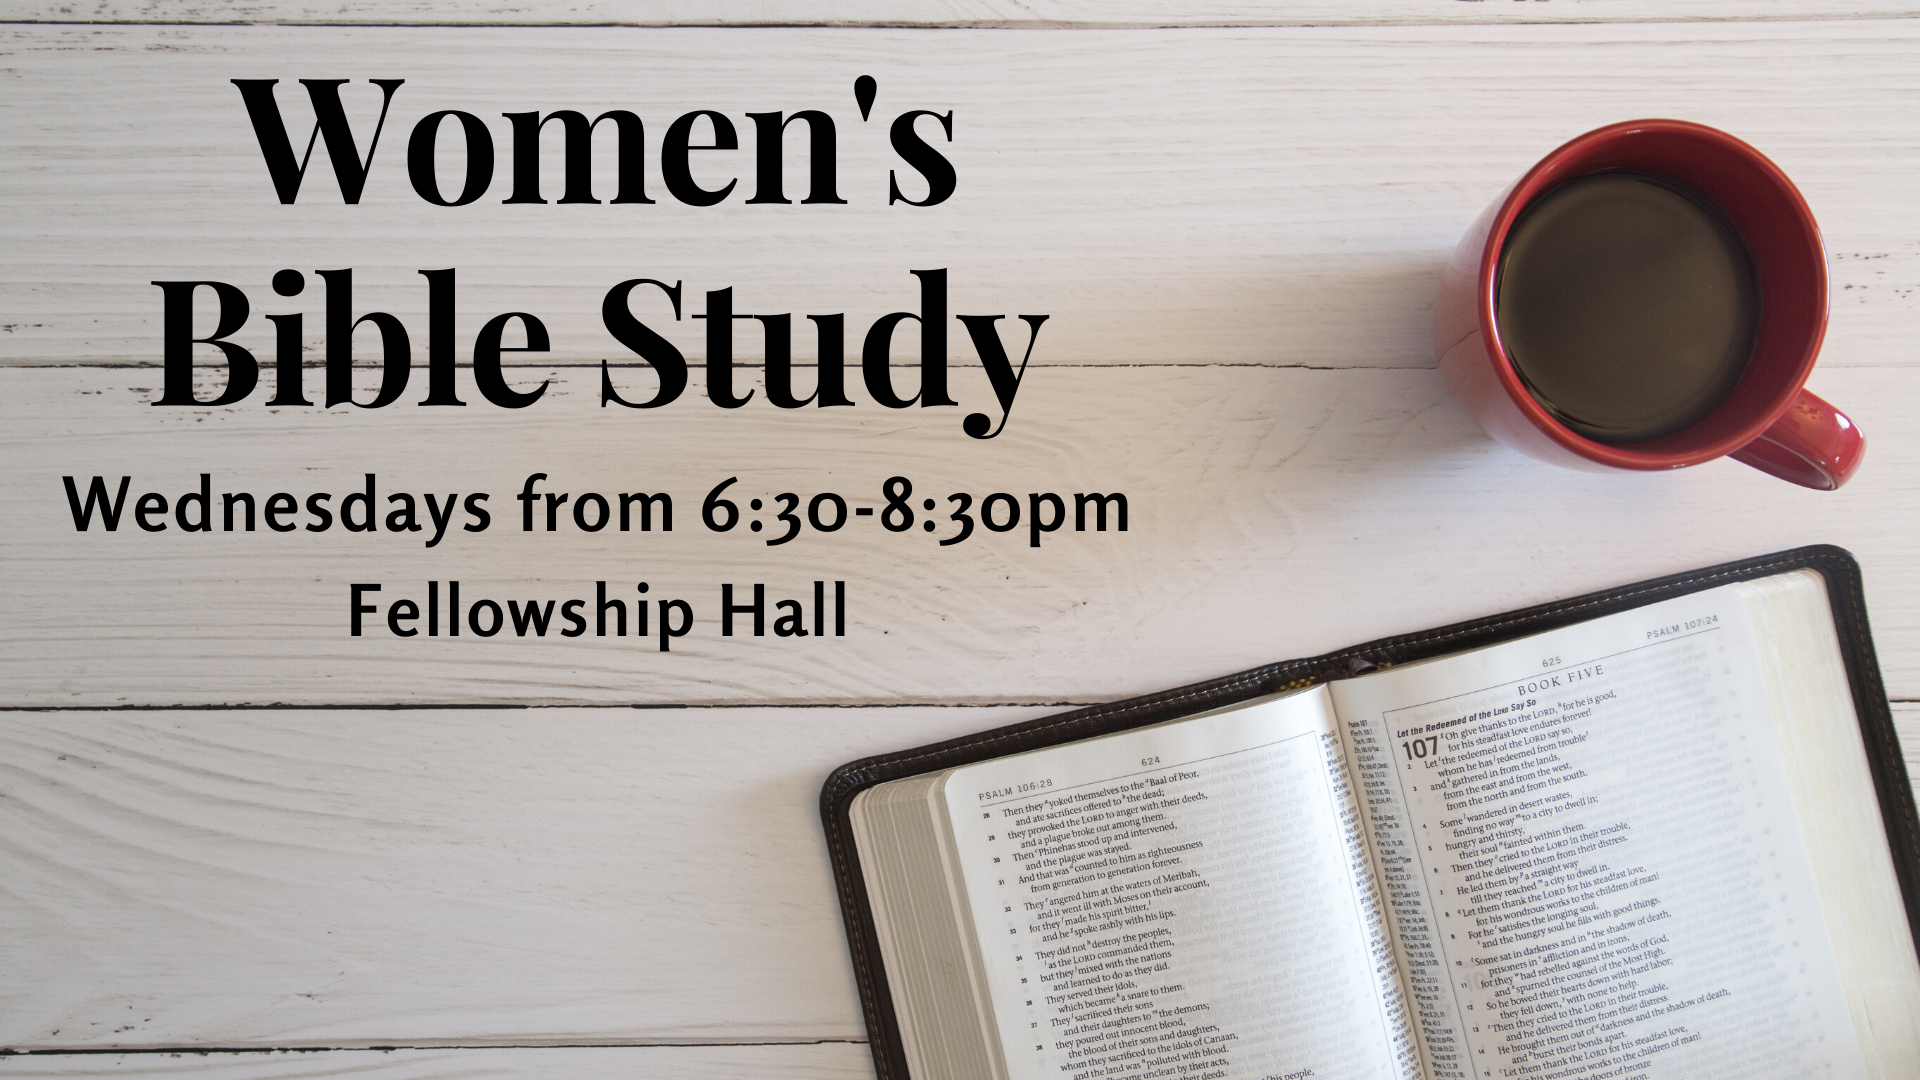 Copy of Women's Bible Study without watermark